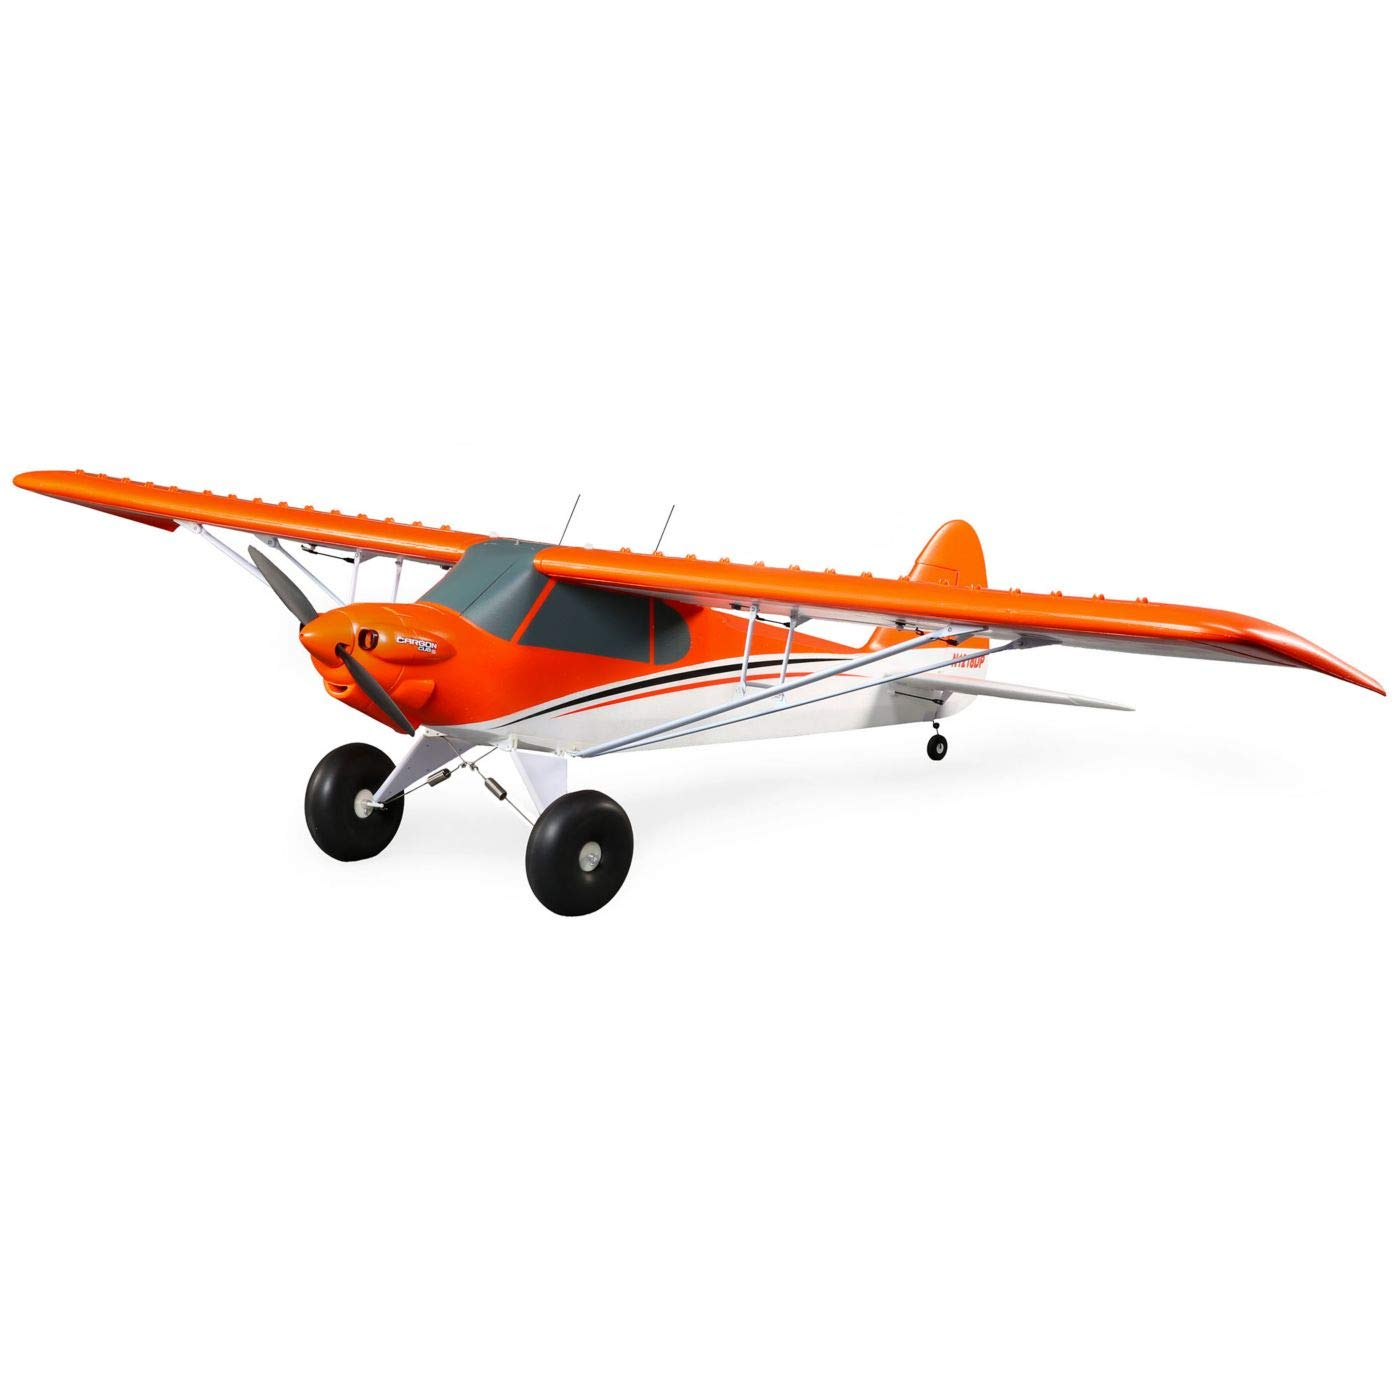 E-flite RC Airplane Carbon-Z Cub SS 2.1m PNP (Transmitter, Receiver, Battery and Charger not Included), EFL12475